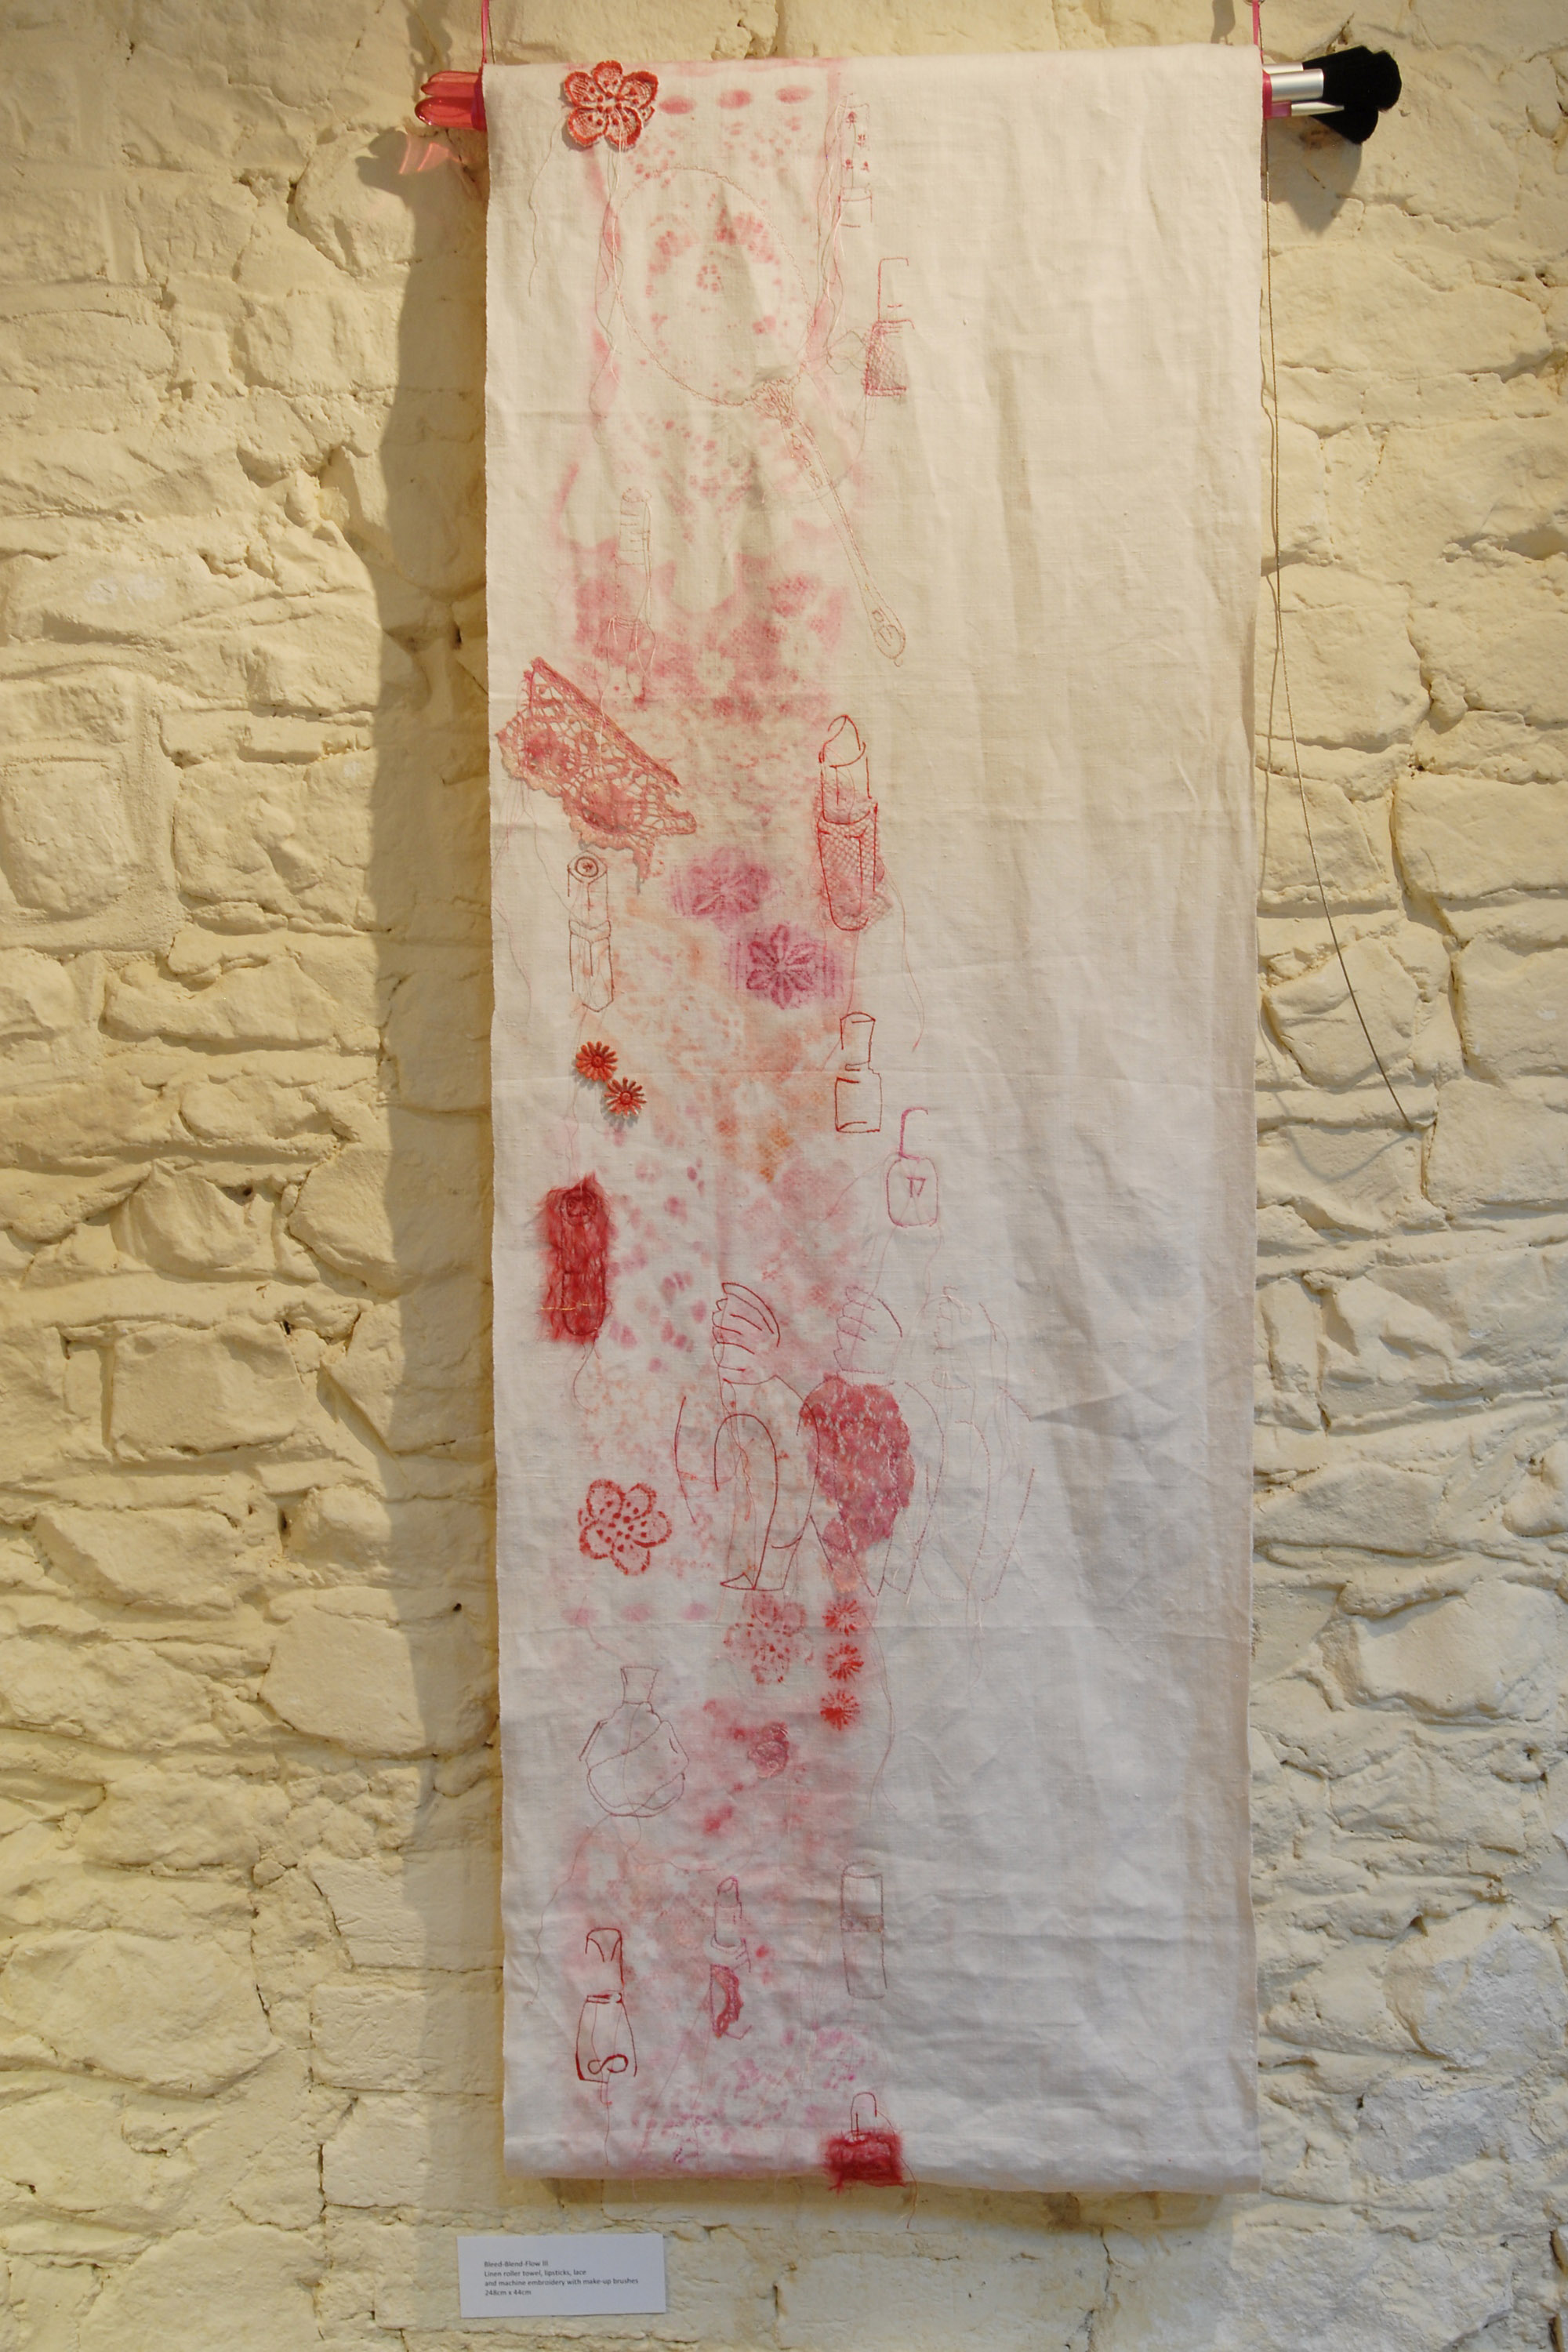 Lipstick and lace panel